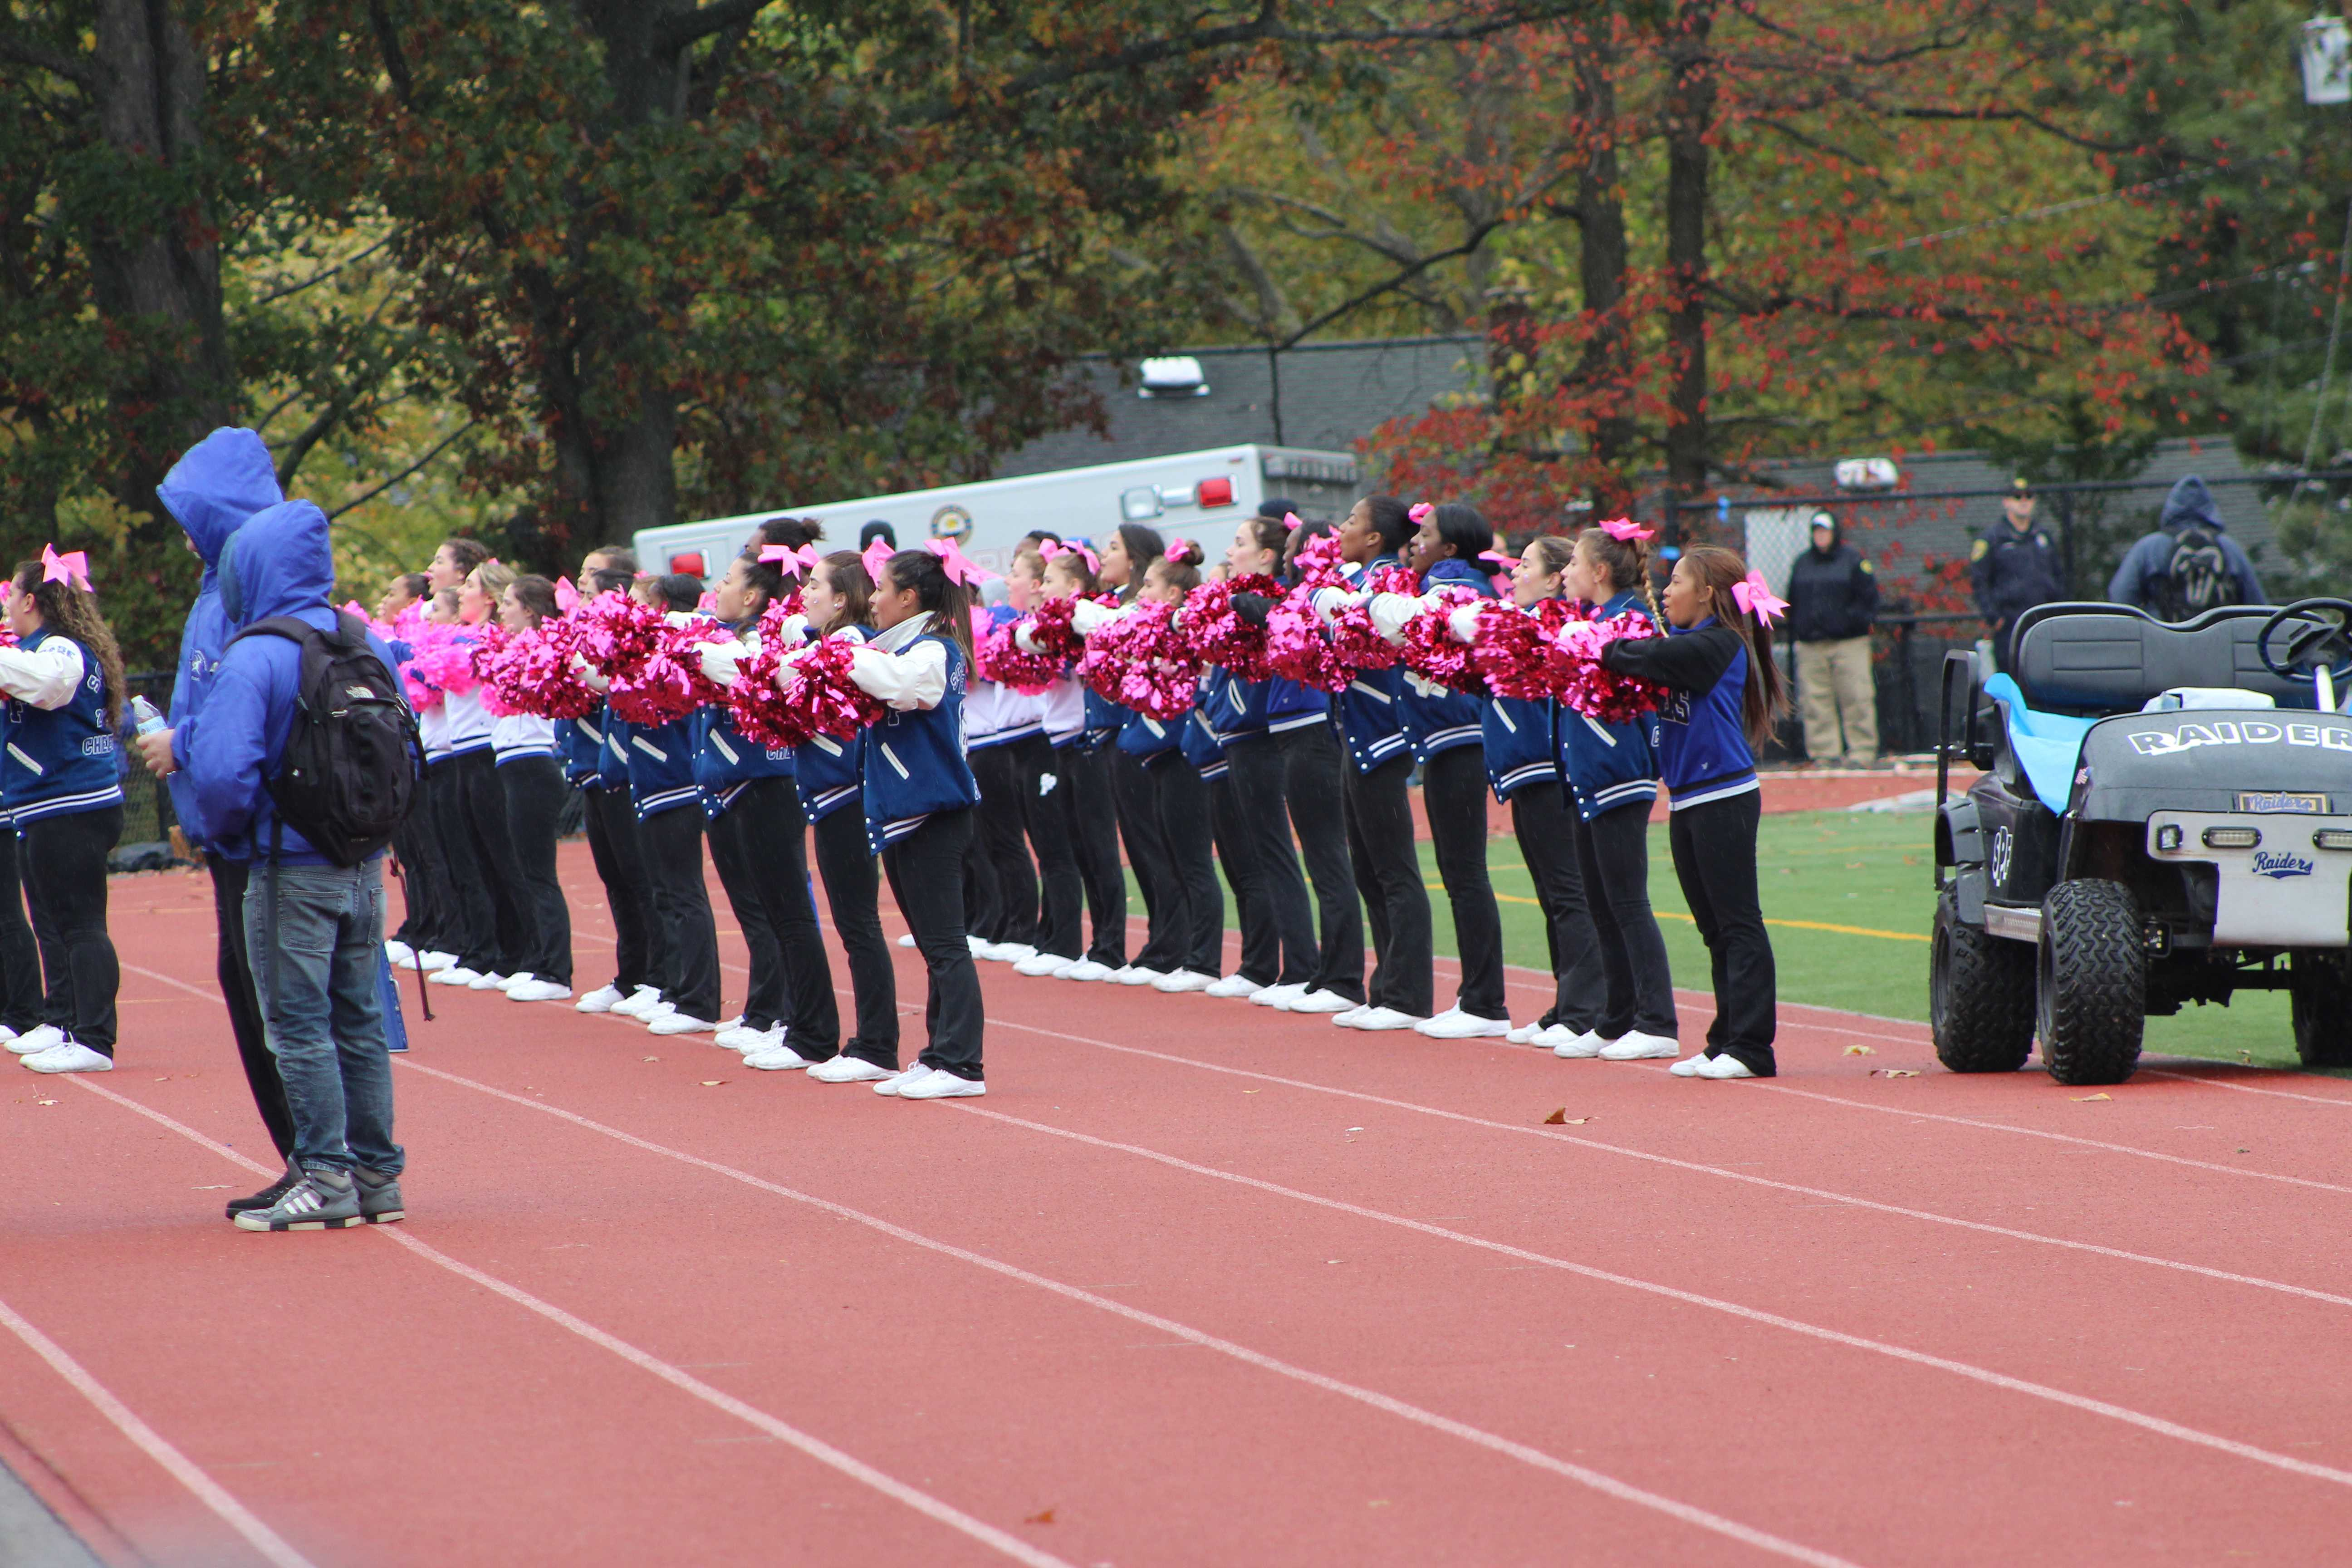 The varsity cheer team are cheering for the Raiders. The squad were trying to hype the audience to support the raiders.